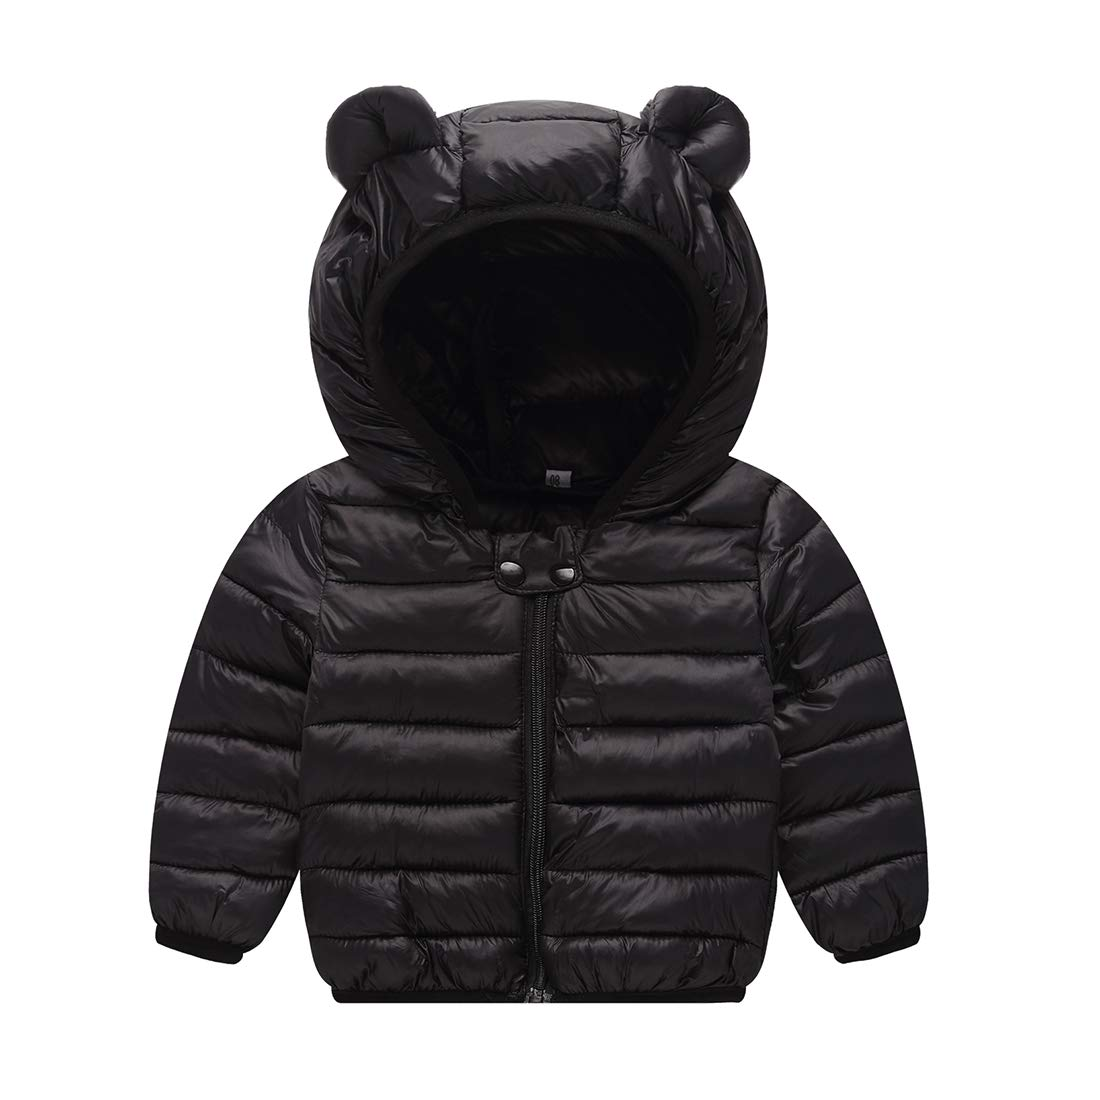 JIEEN Baby Boys Girls Lightweight Warm Down Cotton Coat for Age 0-3 Years Old (M, Black)